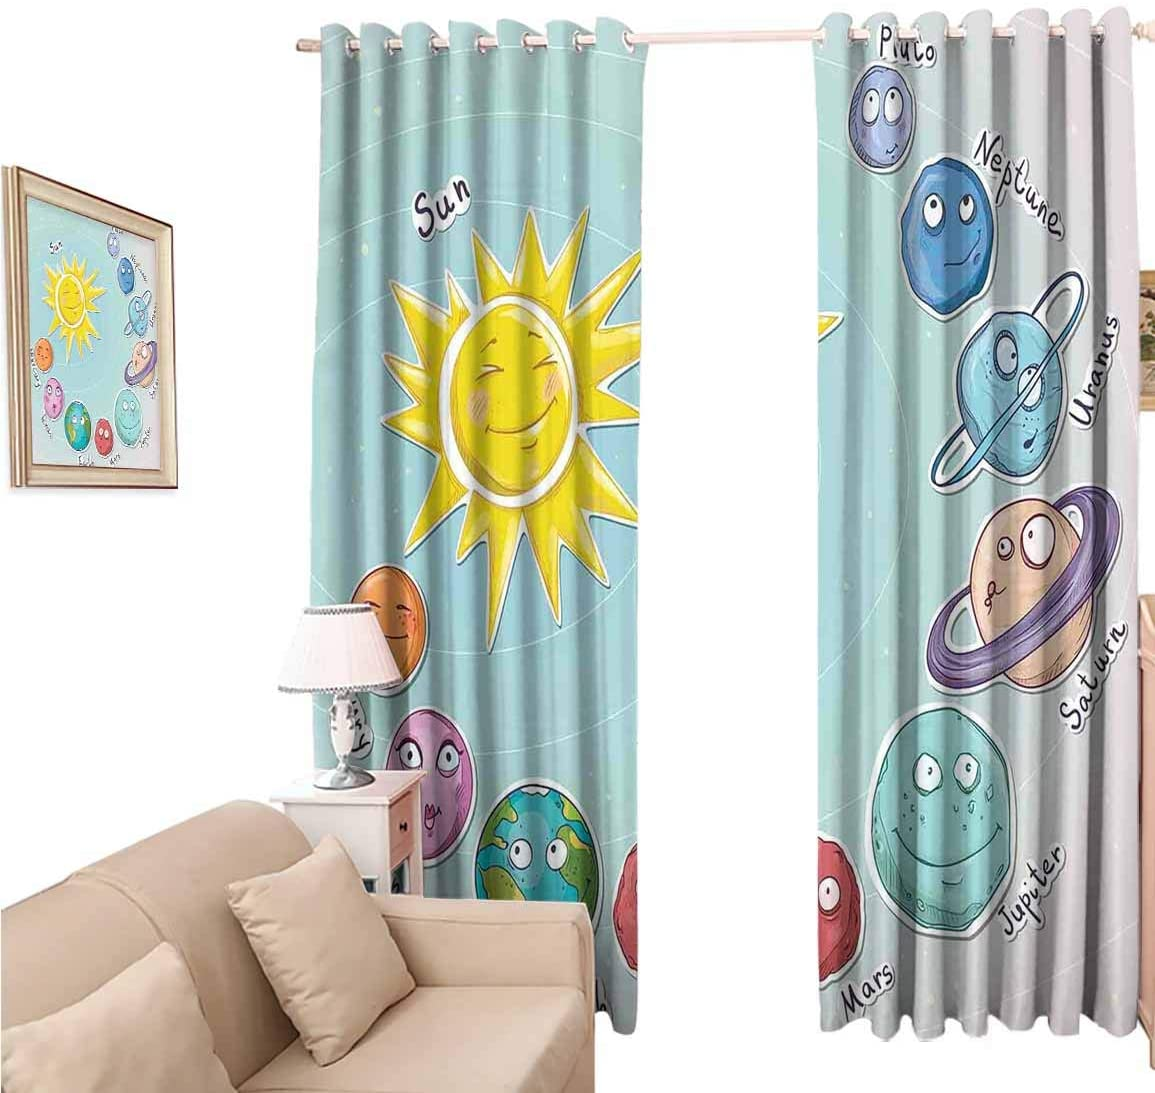 Window Blackout Curtains Fabric, Space Cute Cartoon Sun and Planets of Solar System Fun Celestial Chart Baby Kids Nursery Theme, 108 Inches Long for Nursery Room, 96x108 inch